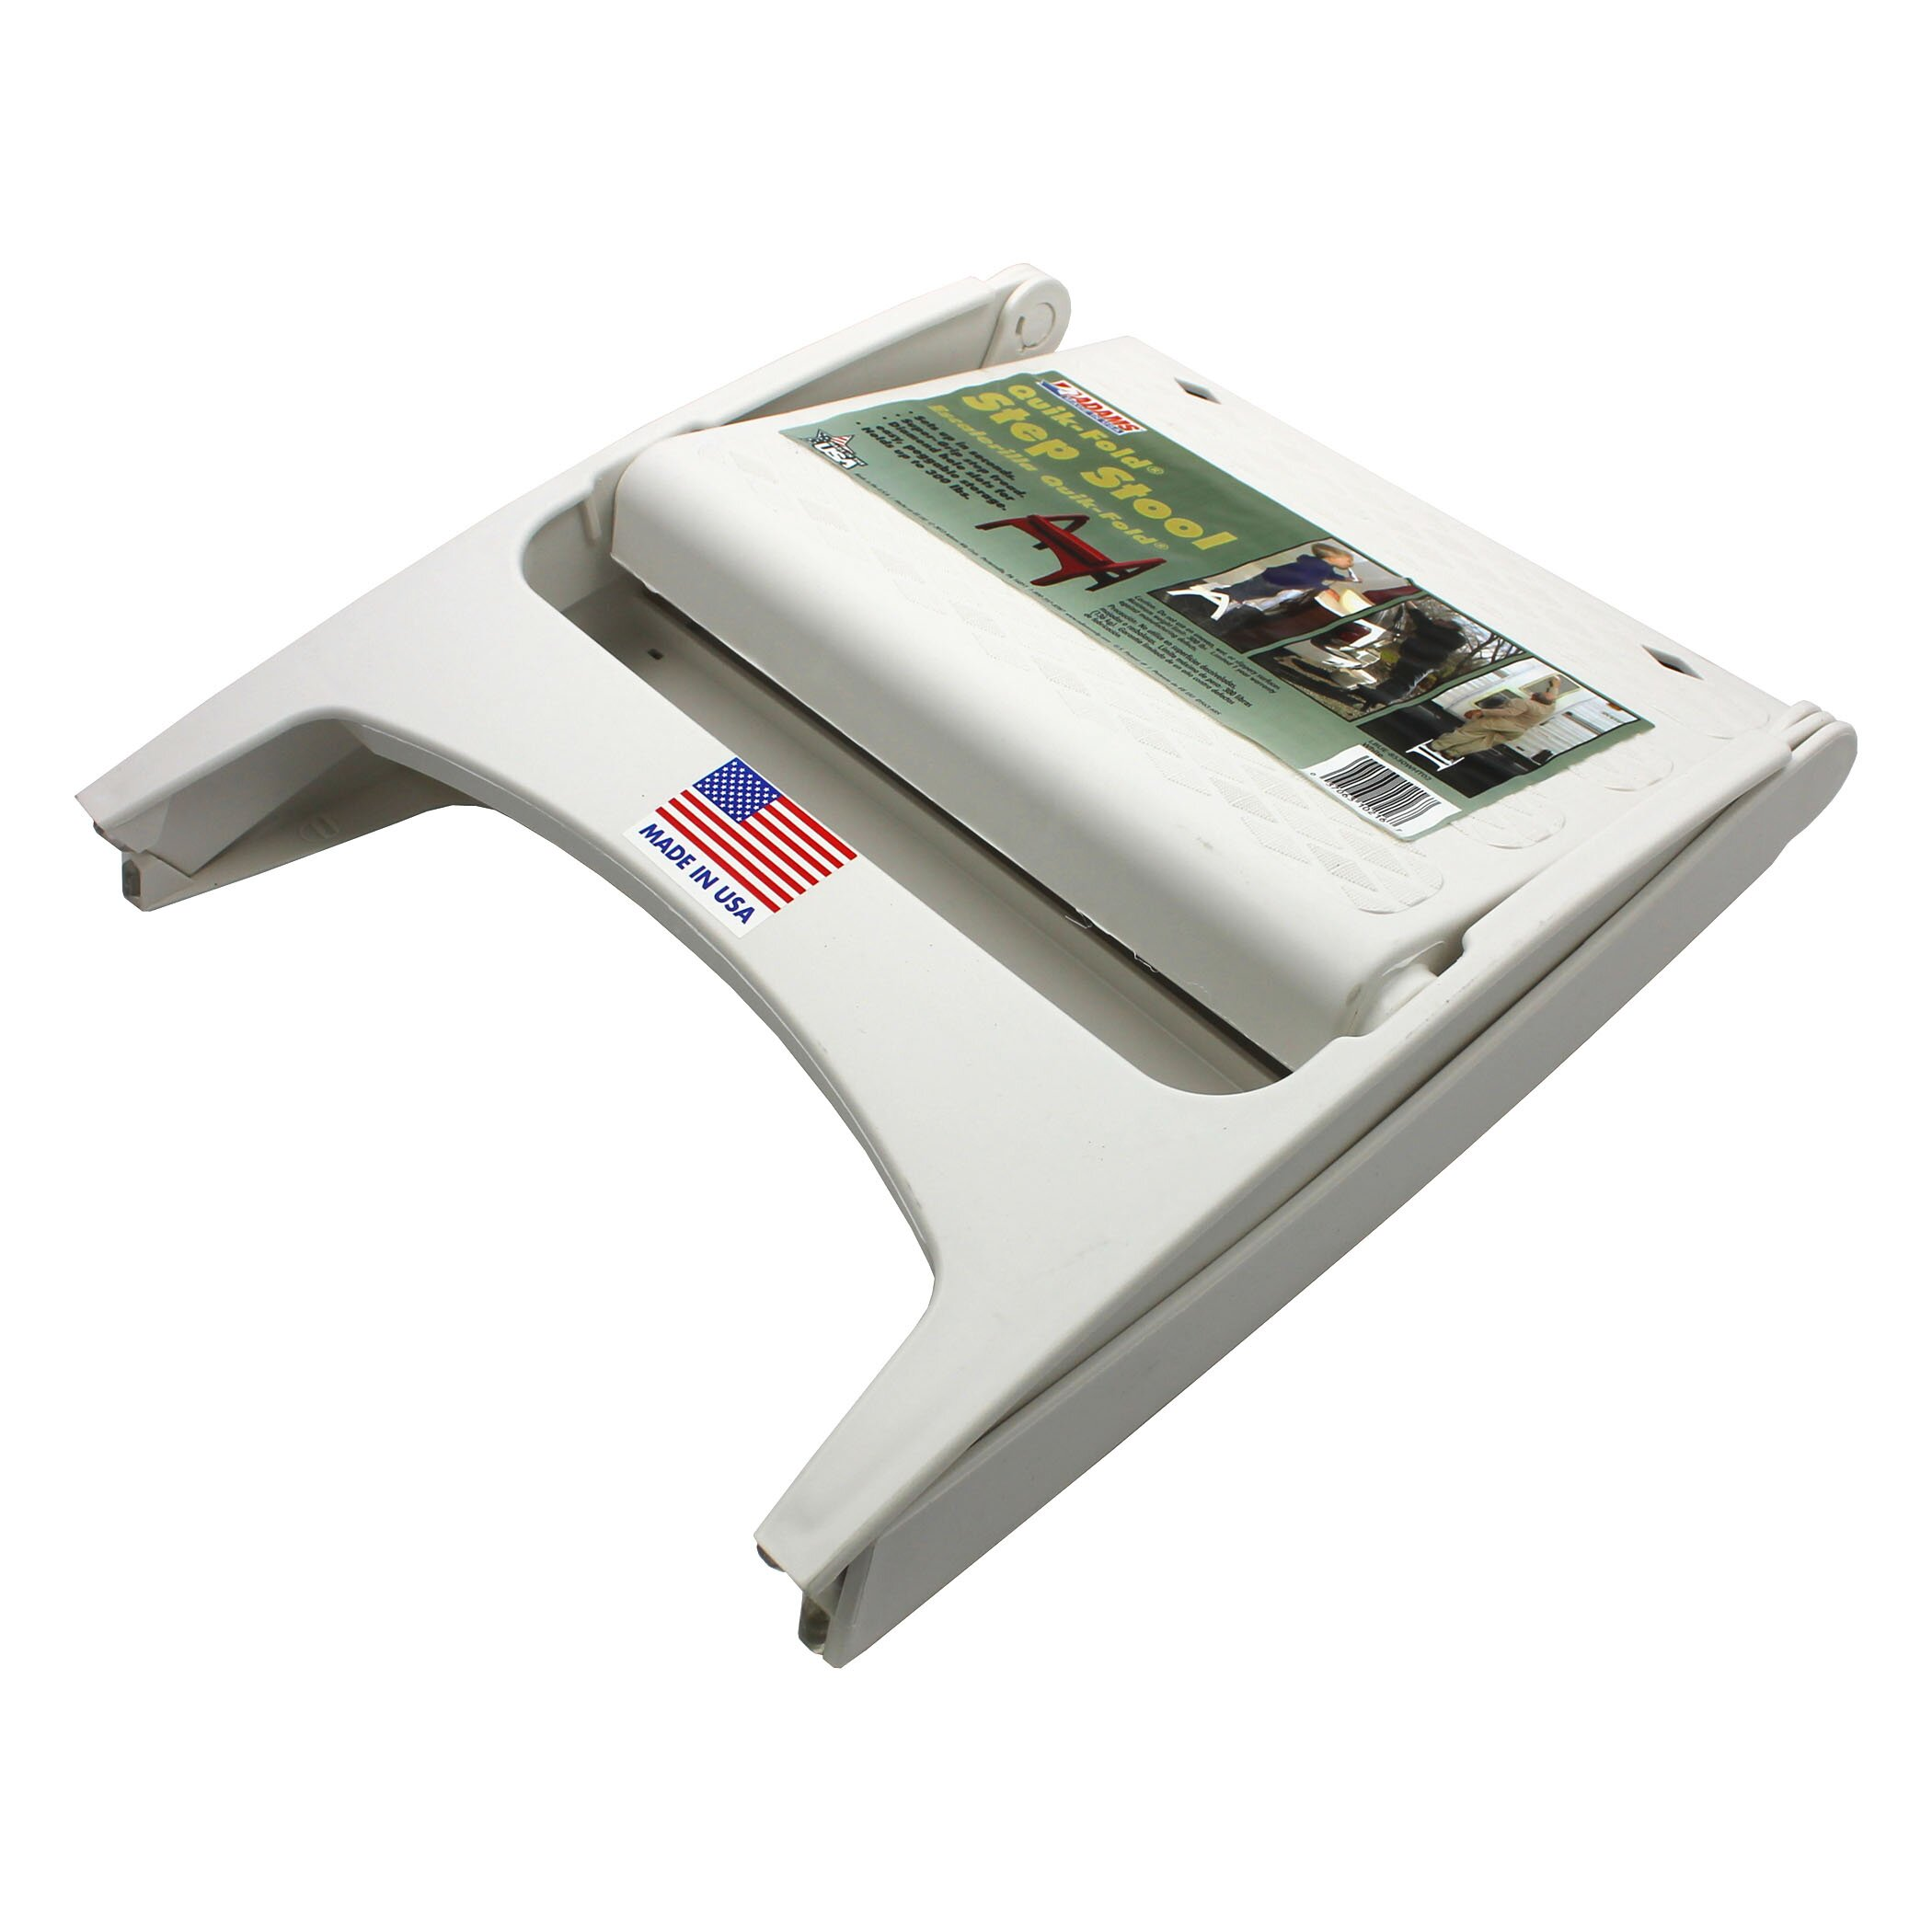 Acco Brands Inc 1 Step Plastic Step Stool With 300 Lb